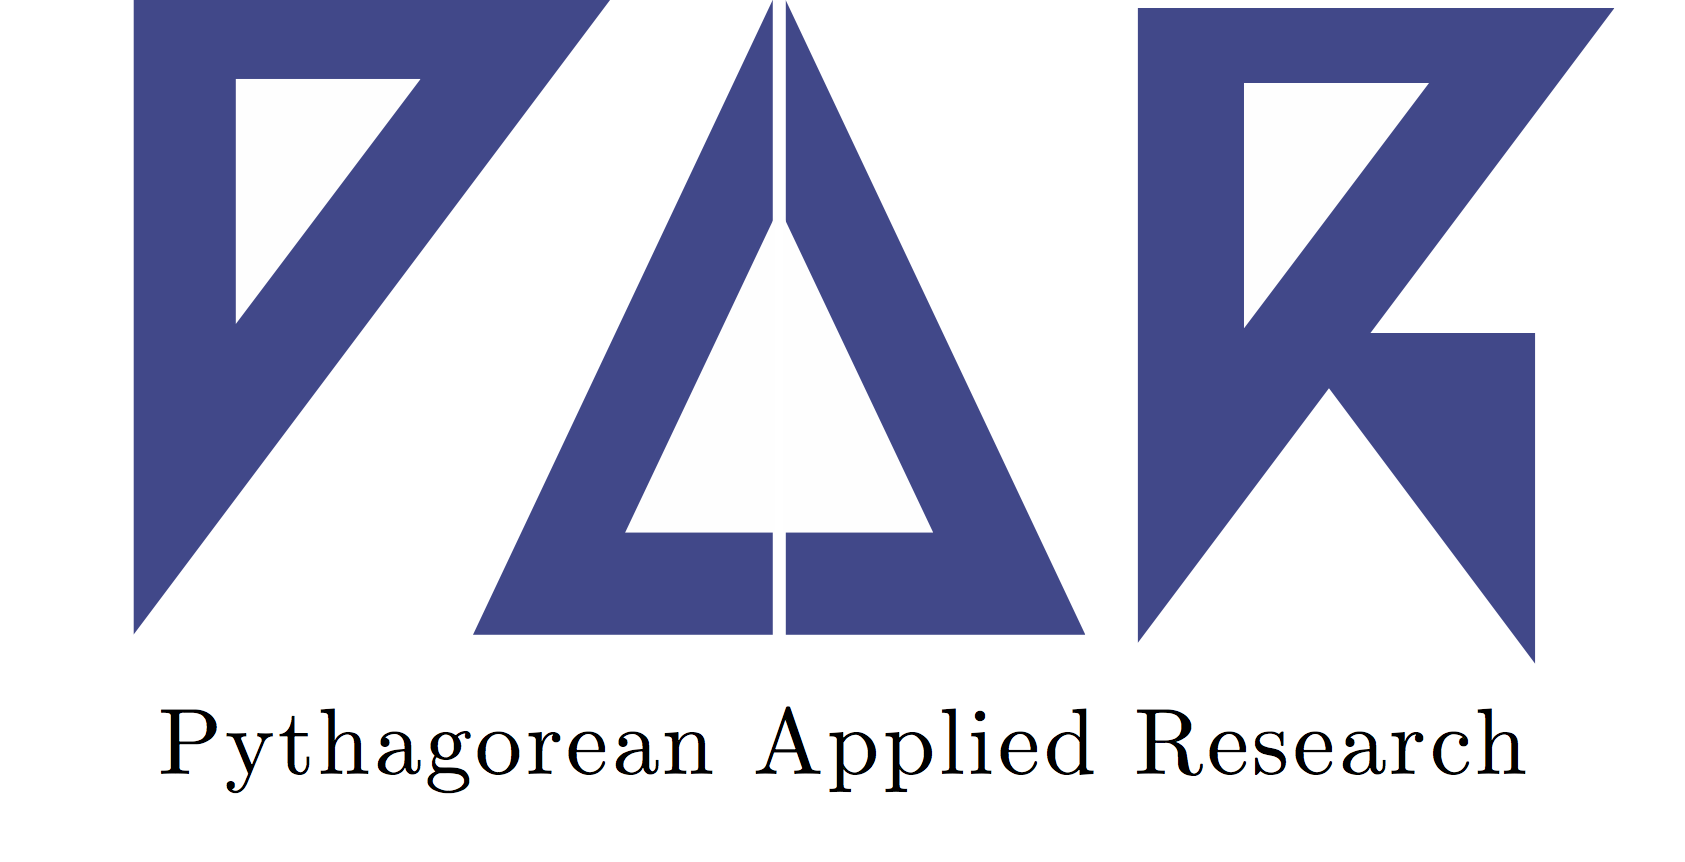 Pythagorean Applied Research